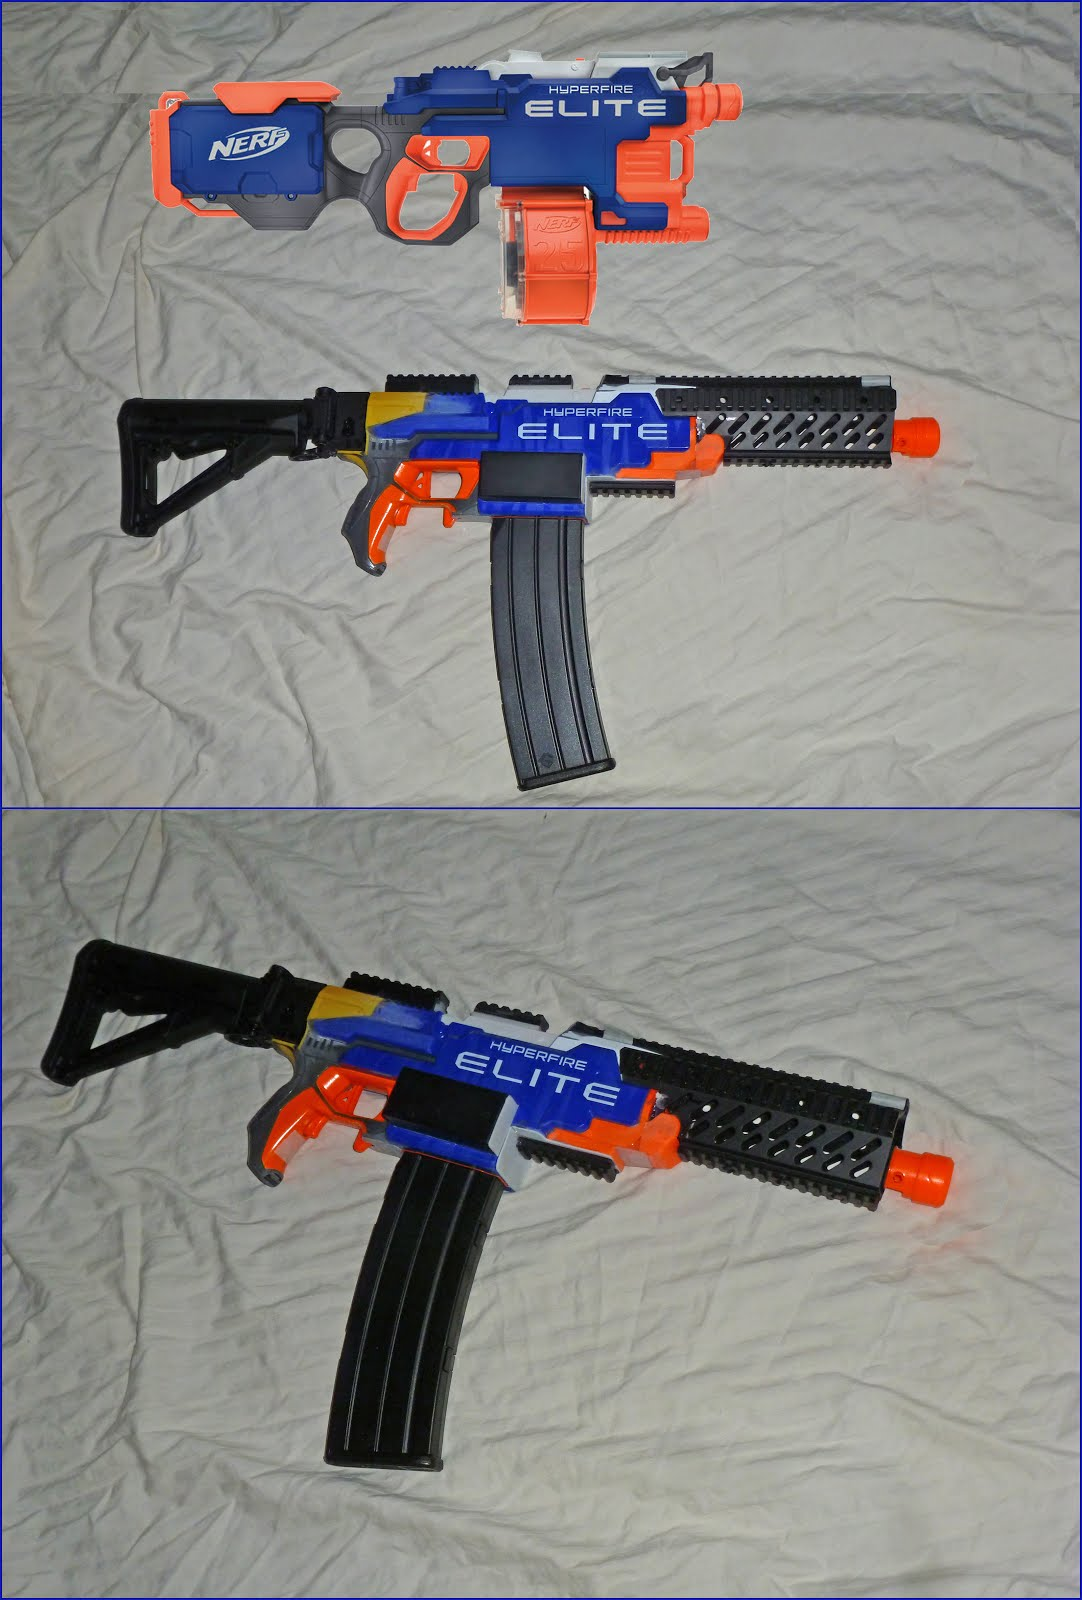 APEX TACTICAL SOLUTIONS: NERF Mod - Hyperfire Mod ...  APEX TACTICAL S...